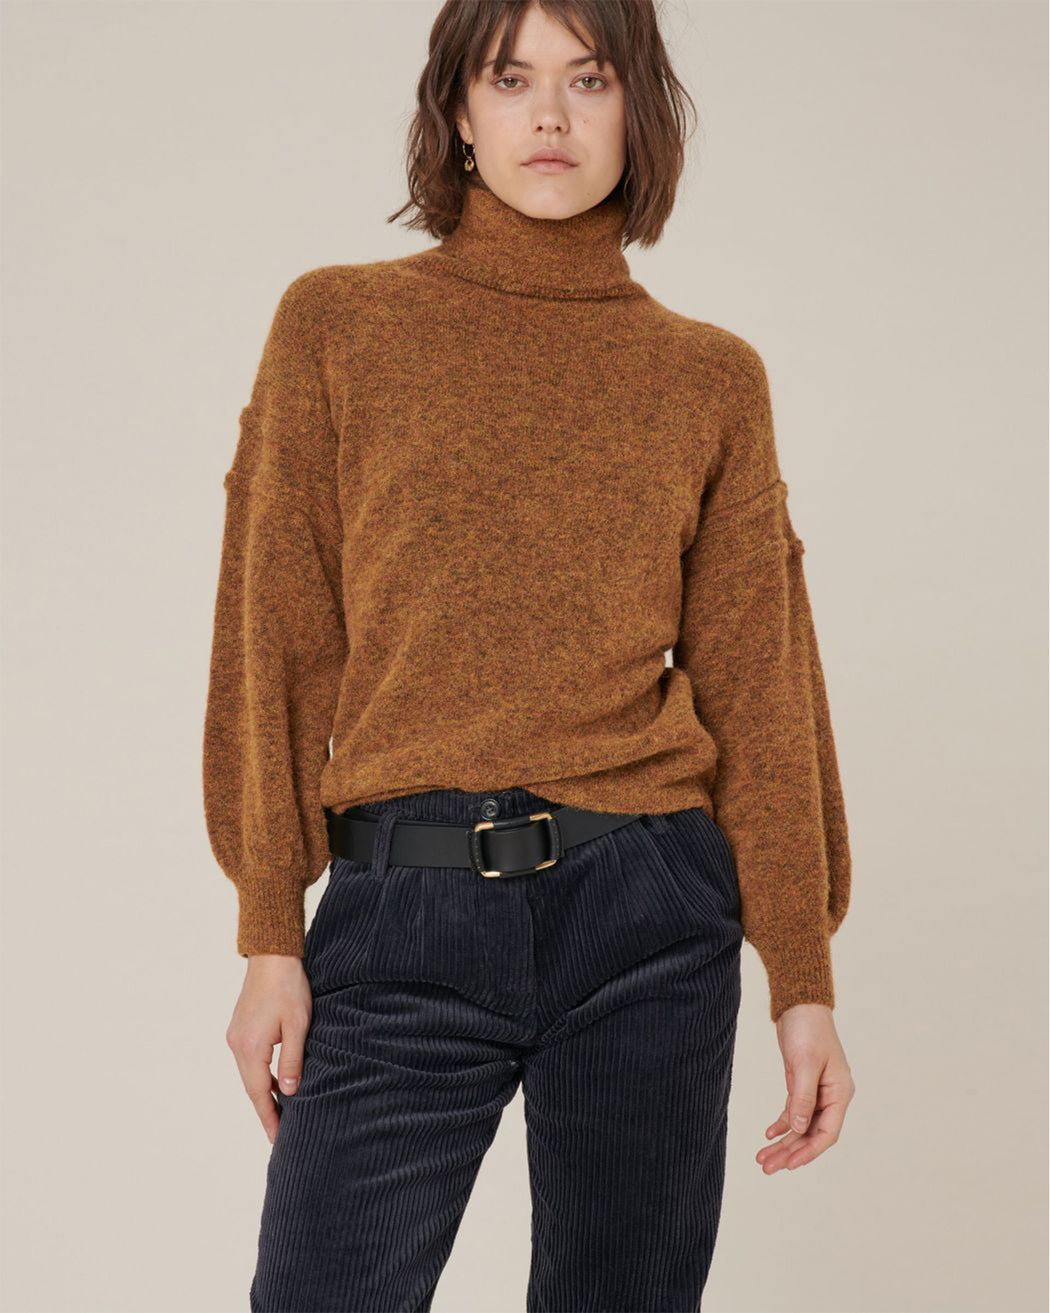 Sessùn:Zadora Sweater – Mapple,ANOMIE